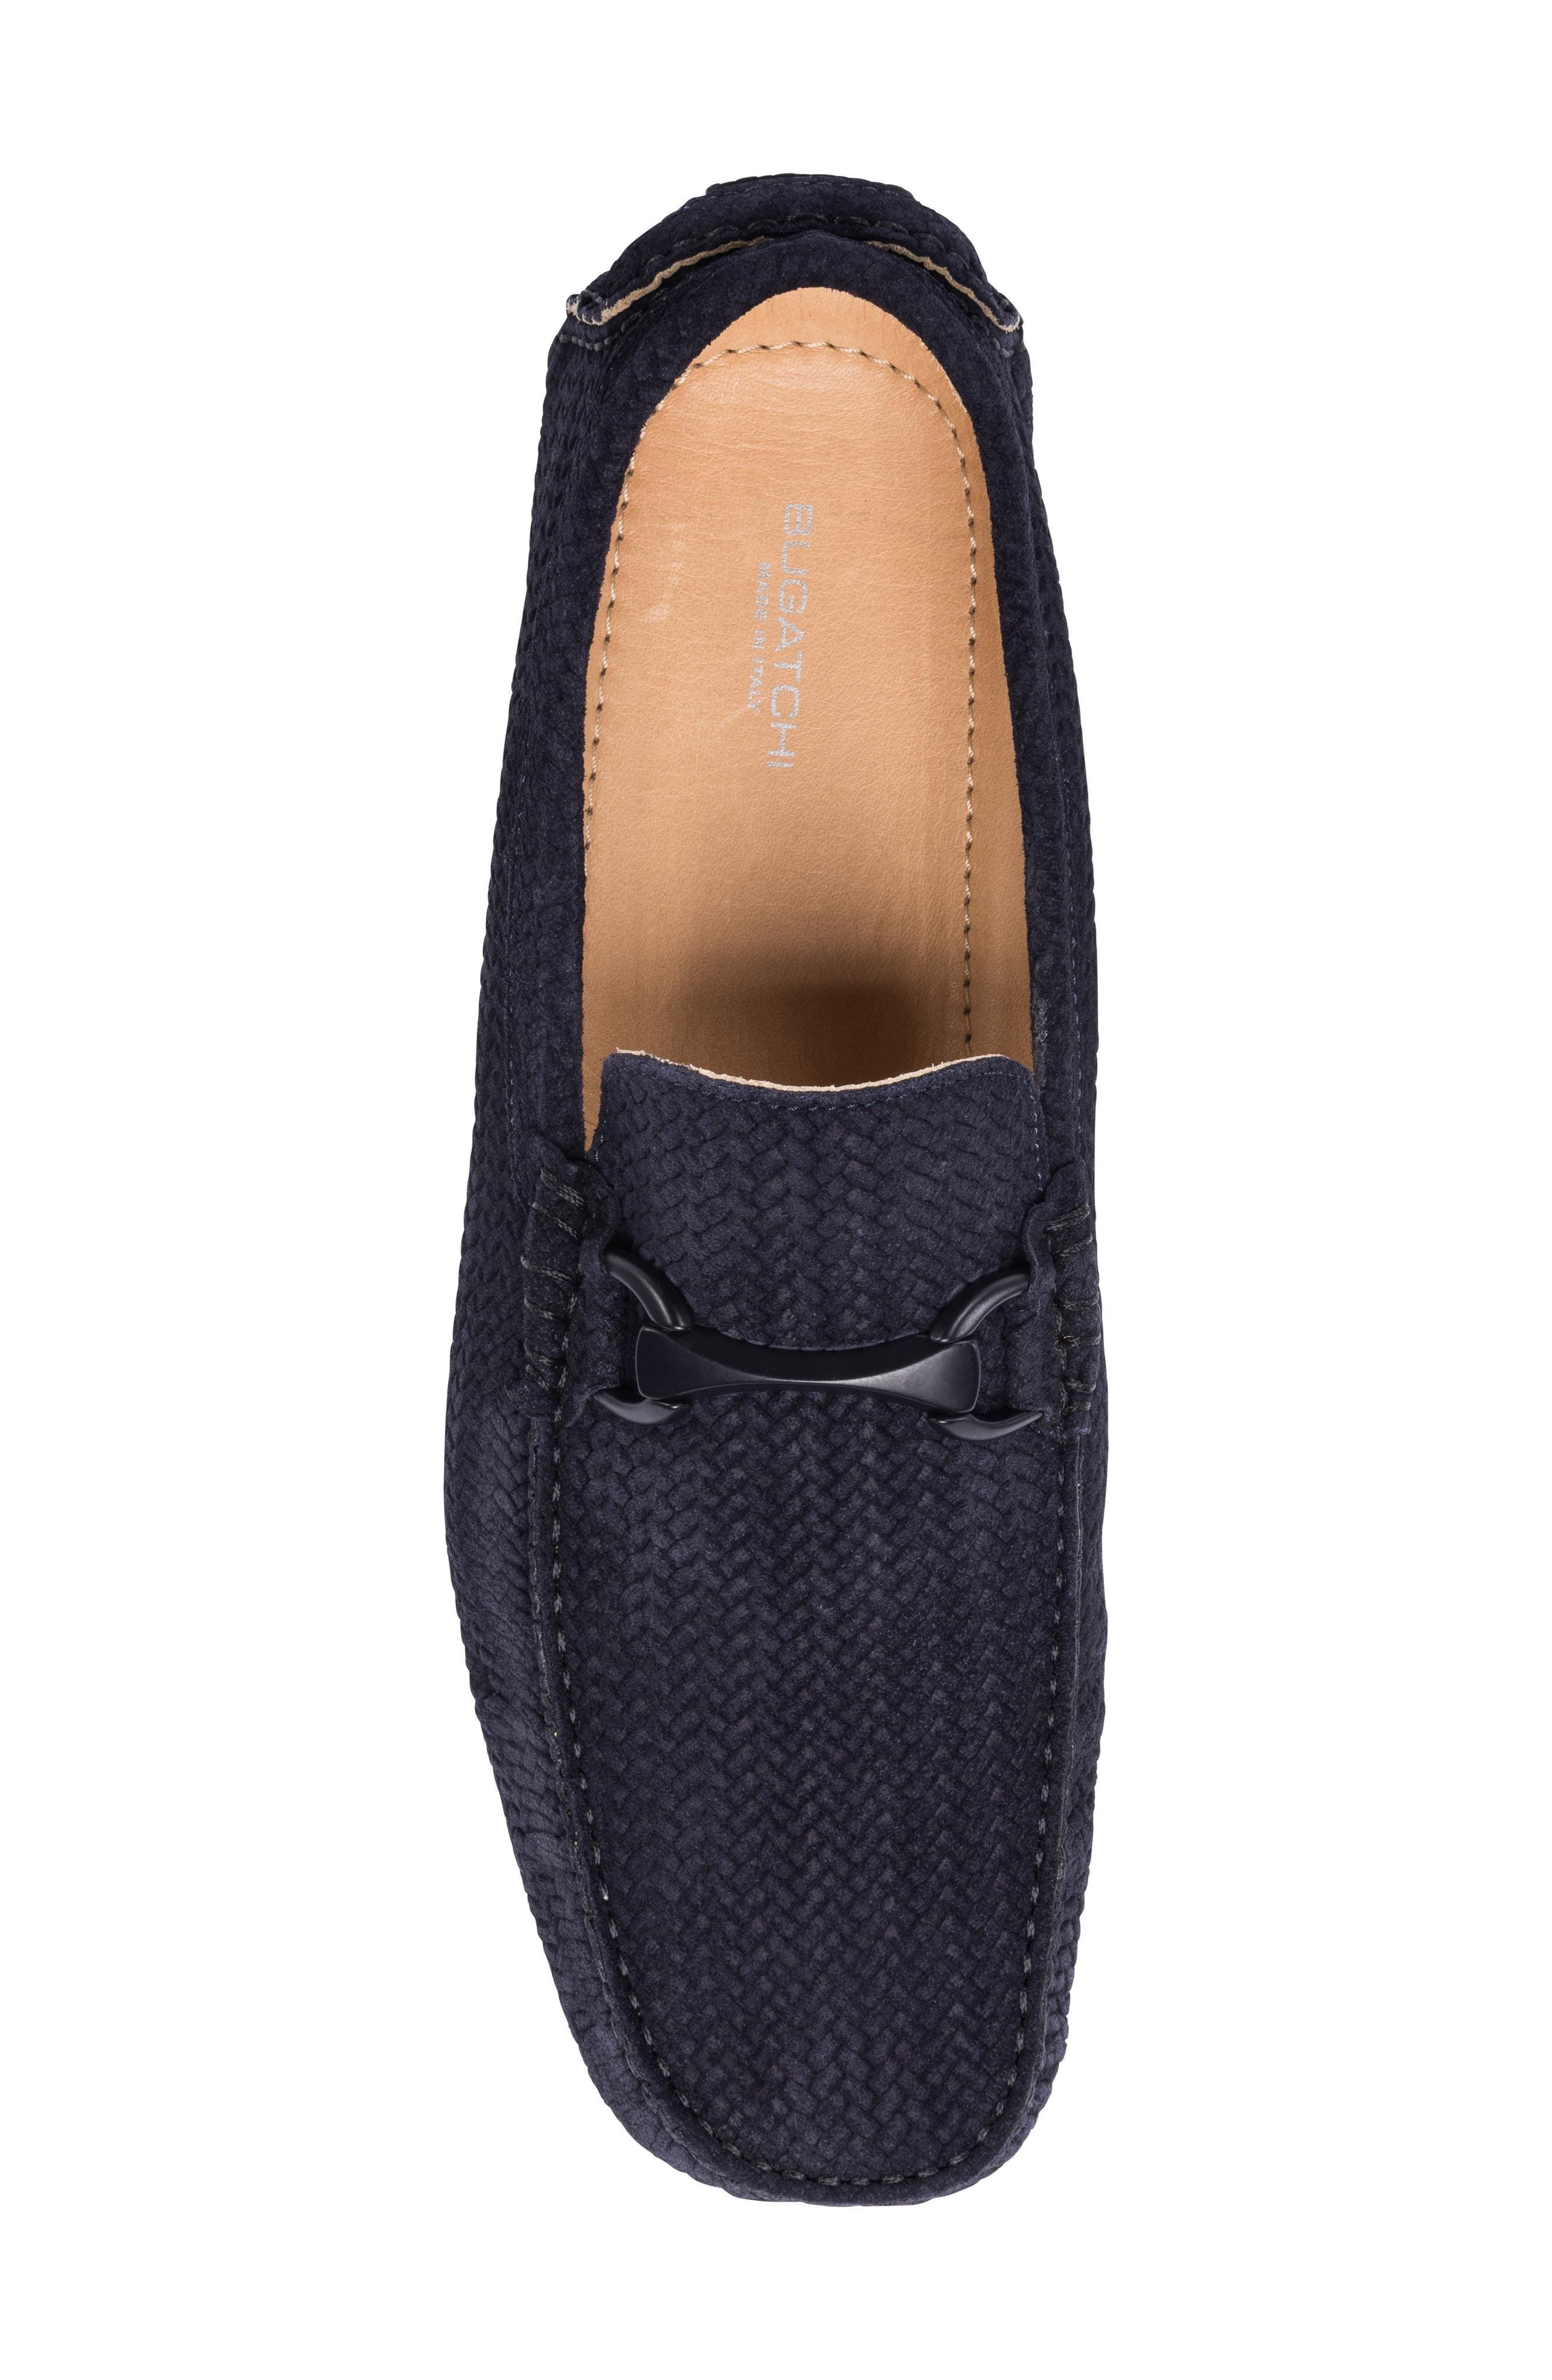 Amalfi Woven Bit Driving Loafer,                             Alternate thumbnail 5, color,                             429